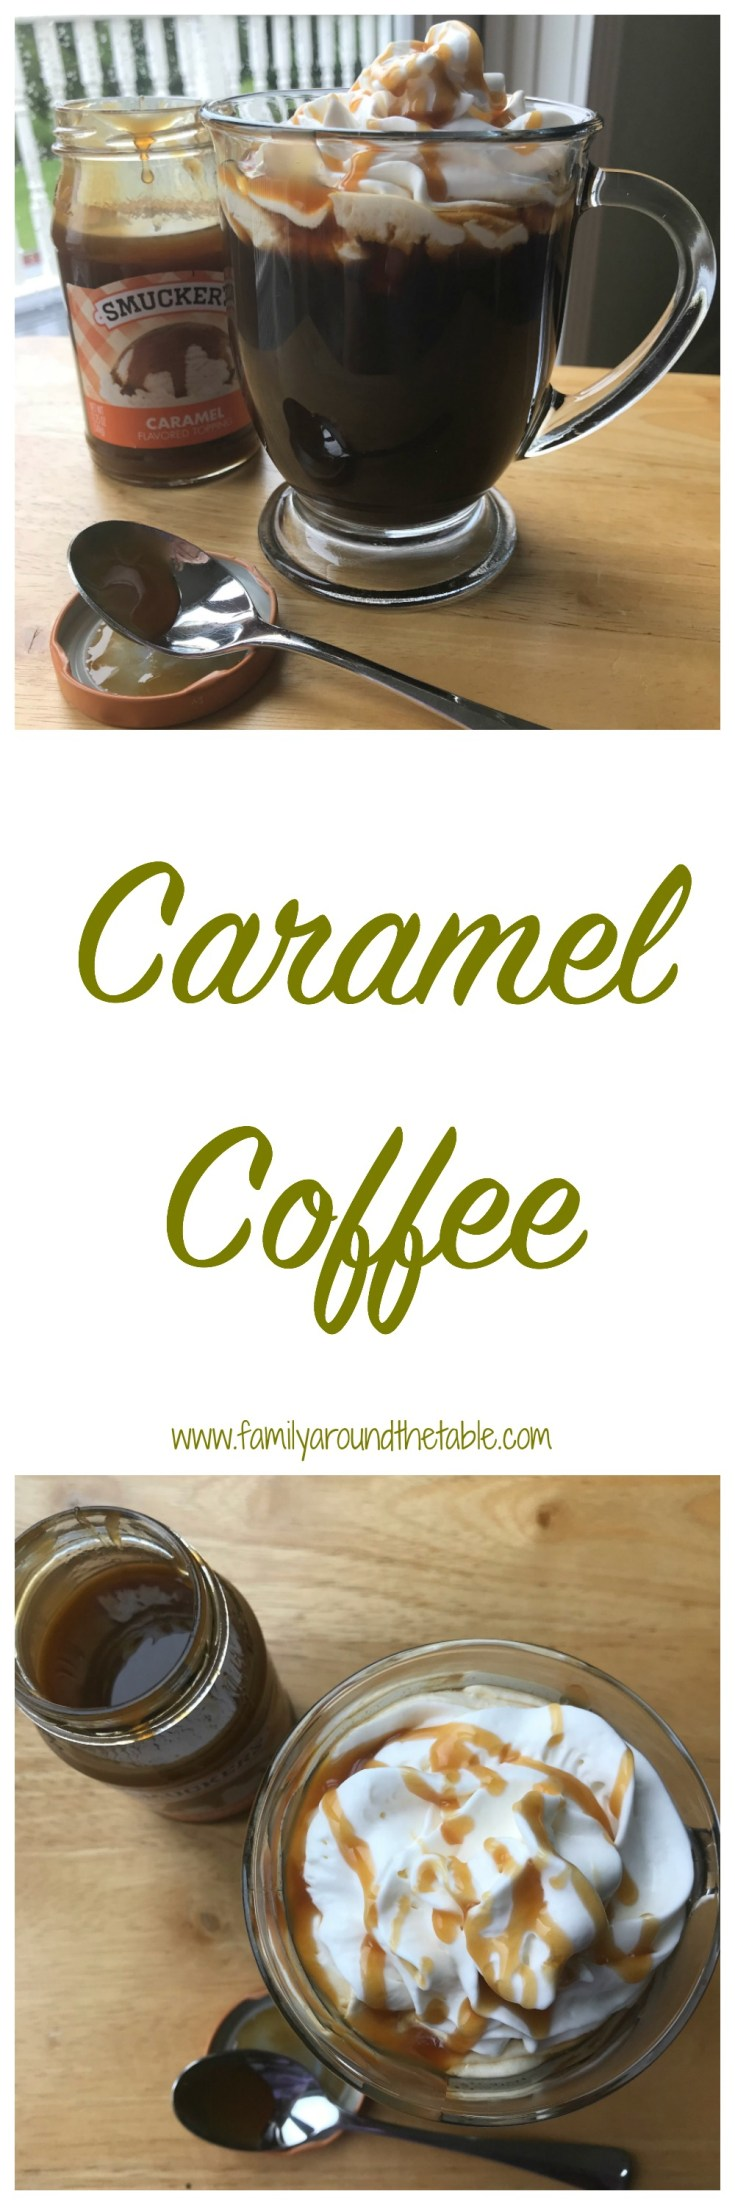 Making caramel coffee couldn't be easier.